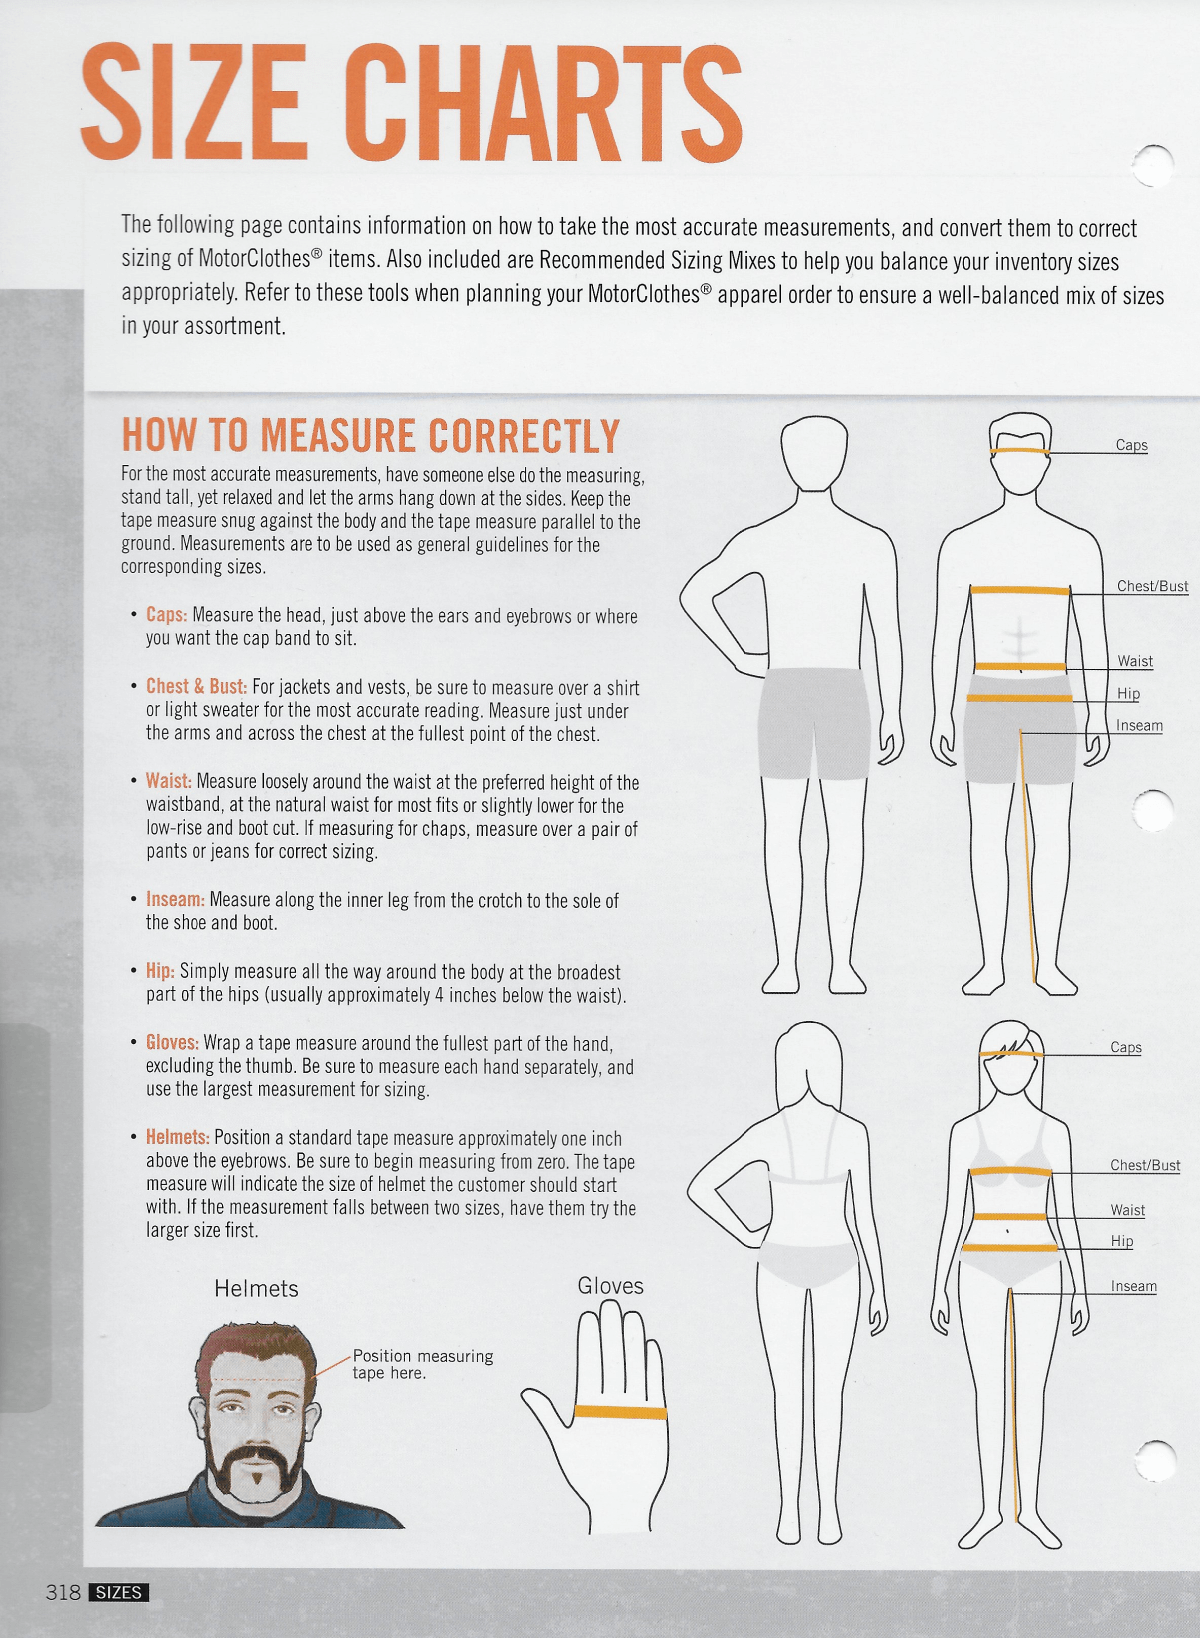 Harley-Davidson® Sizing Charts For MotorClothes on